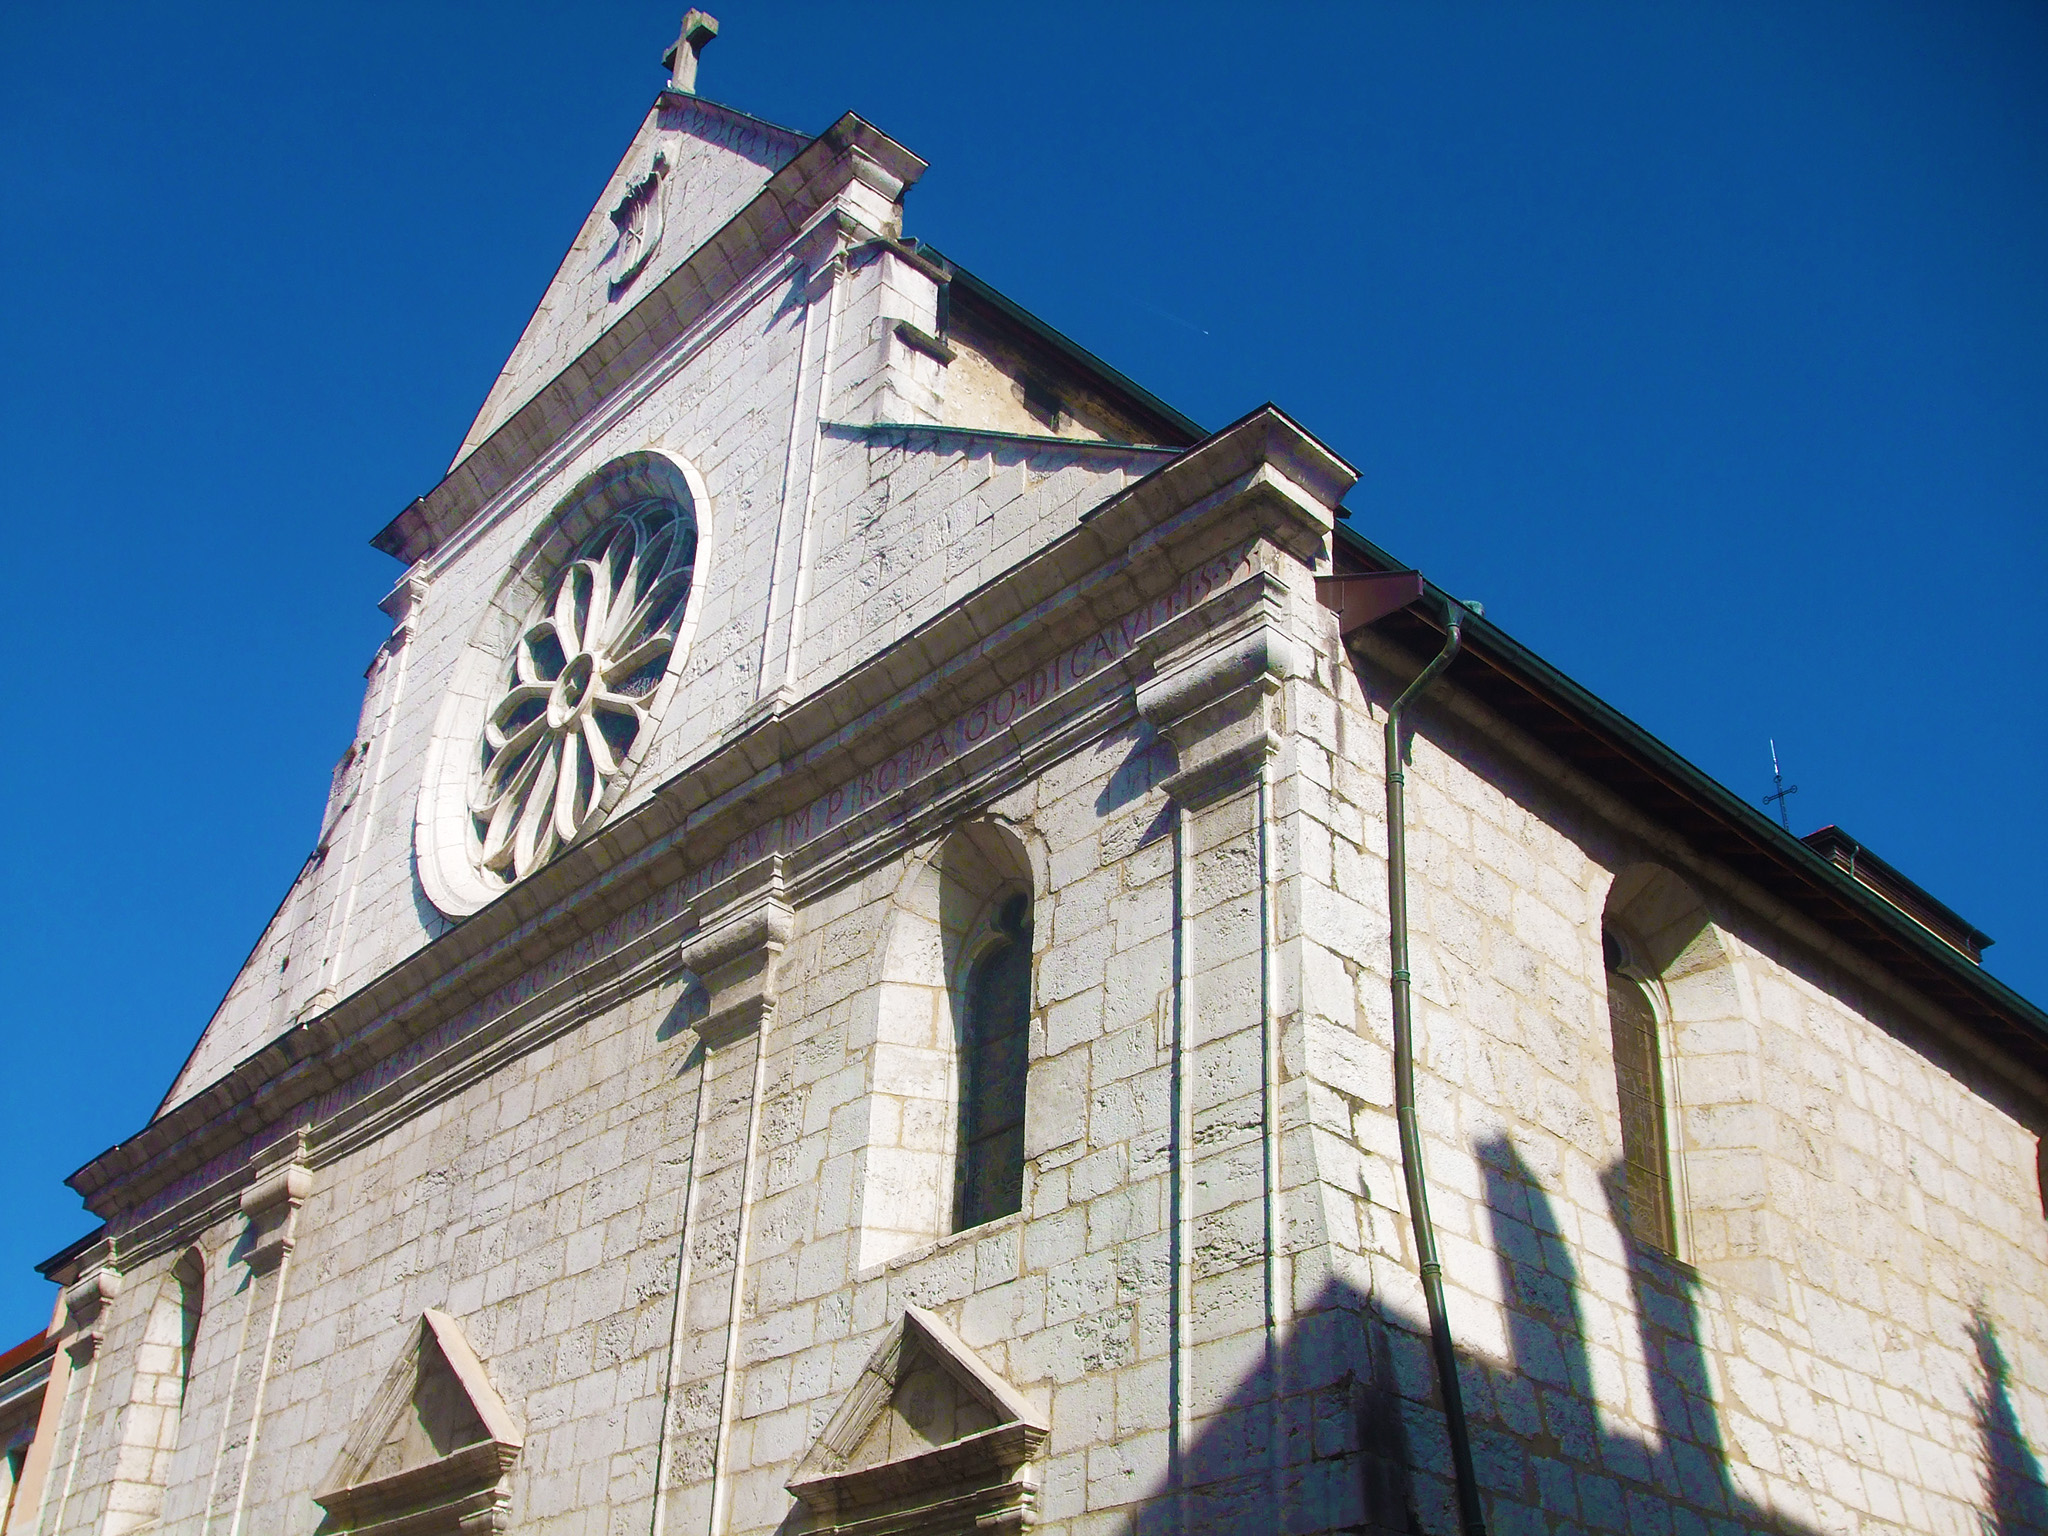 kt_2020_370_Keytours_excursions_Swisstours_annecy_cathedrale_saint-pierre1_2048_10